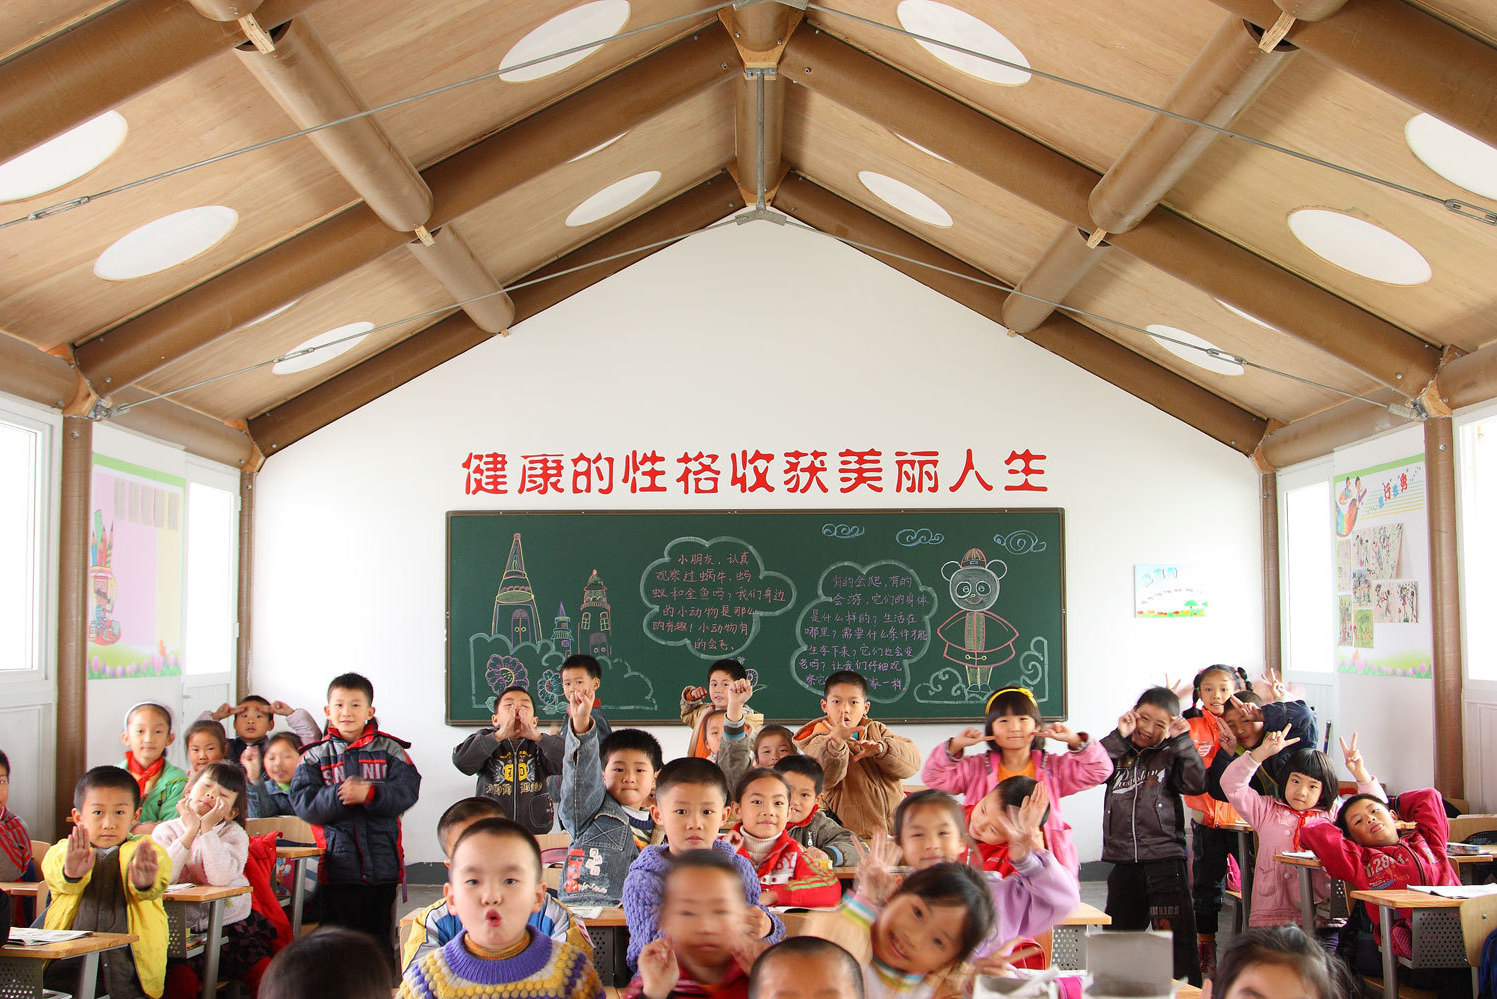 Inside Chengdu's temporary Hualin Elementary School.